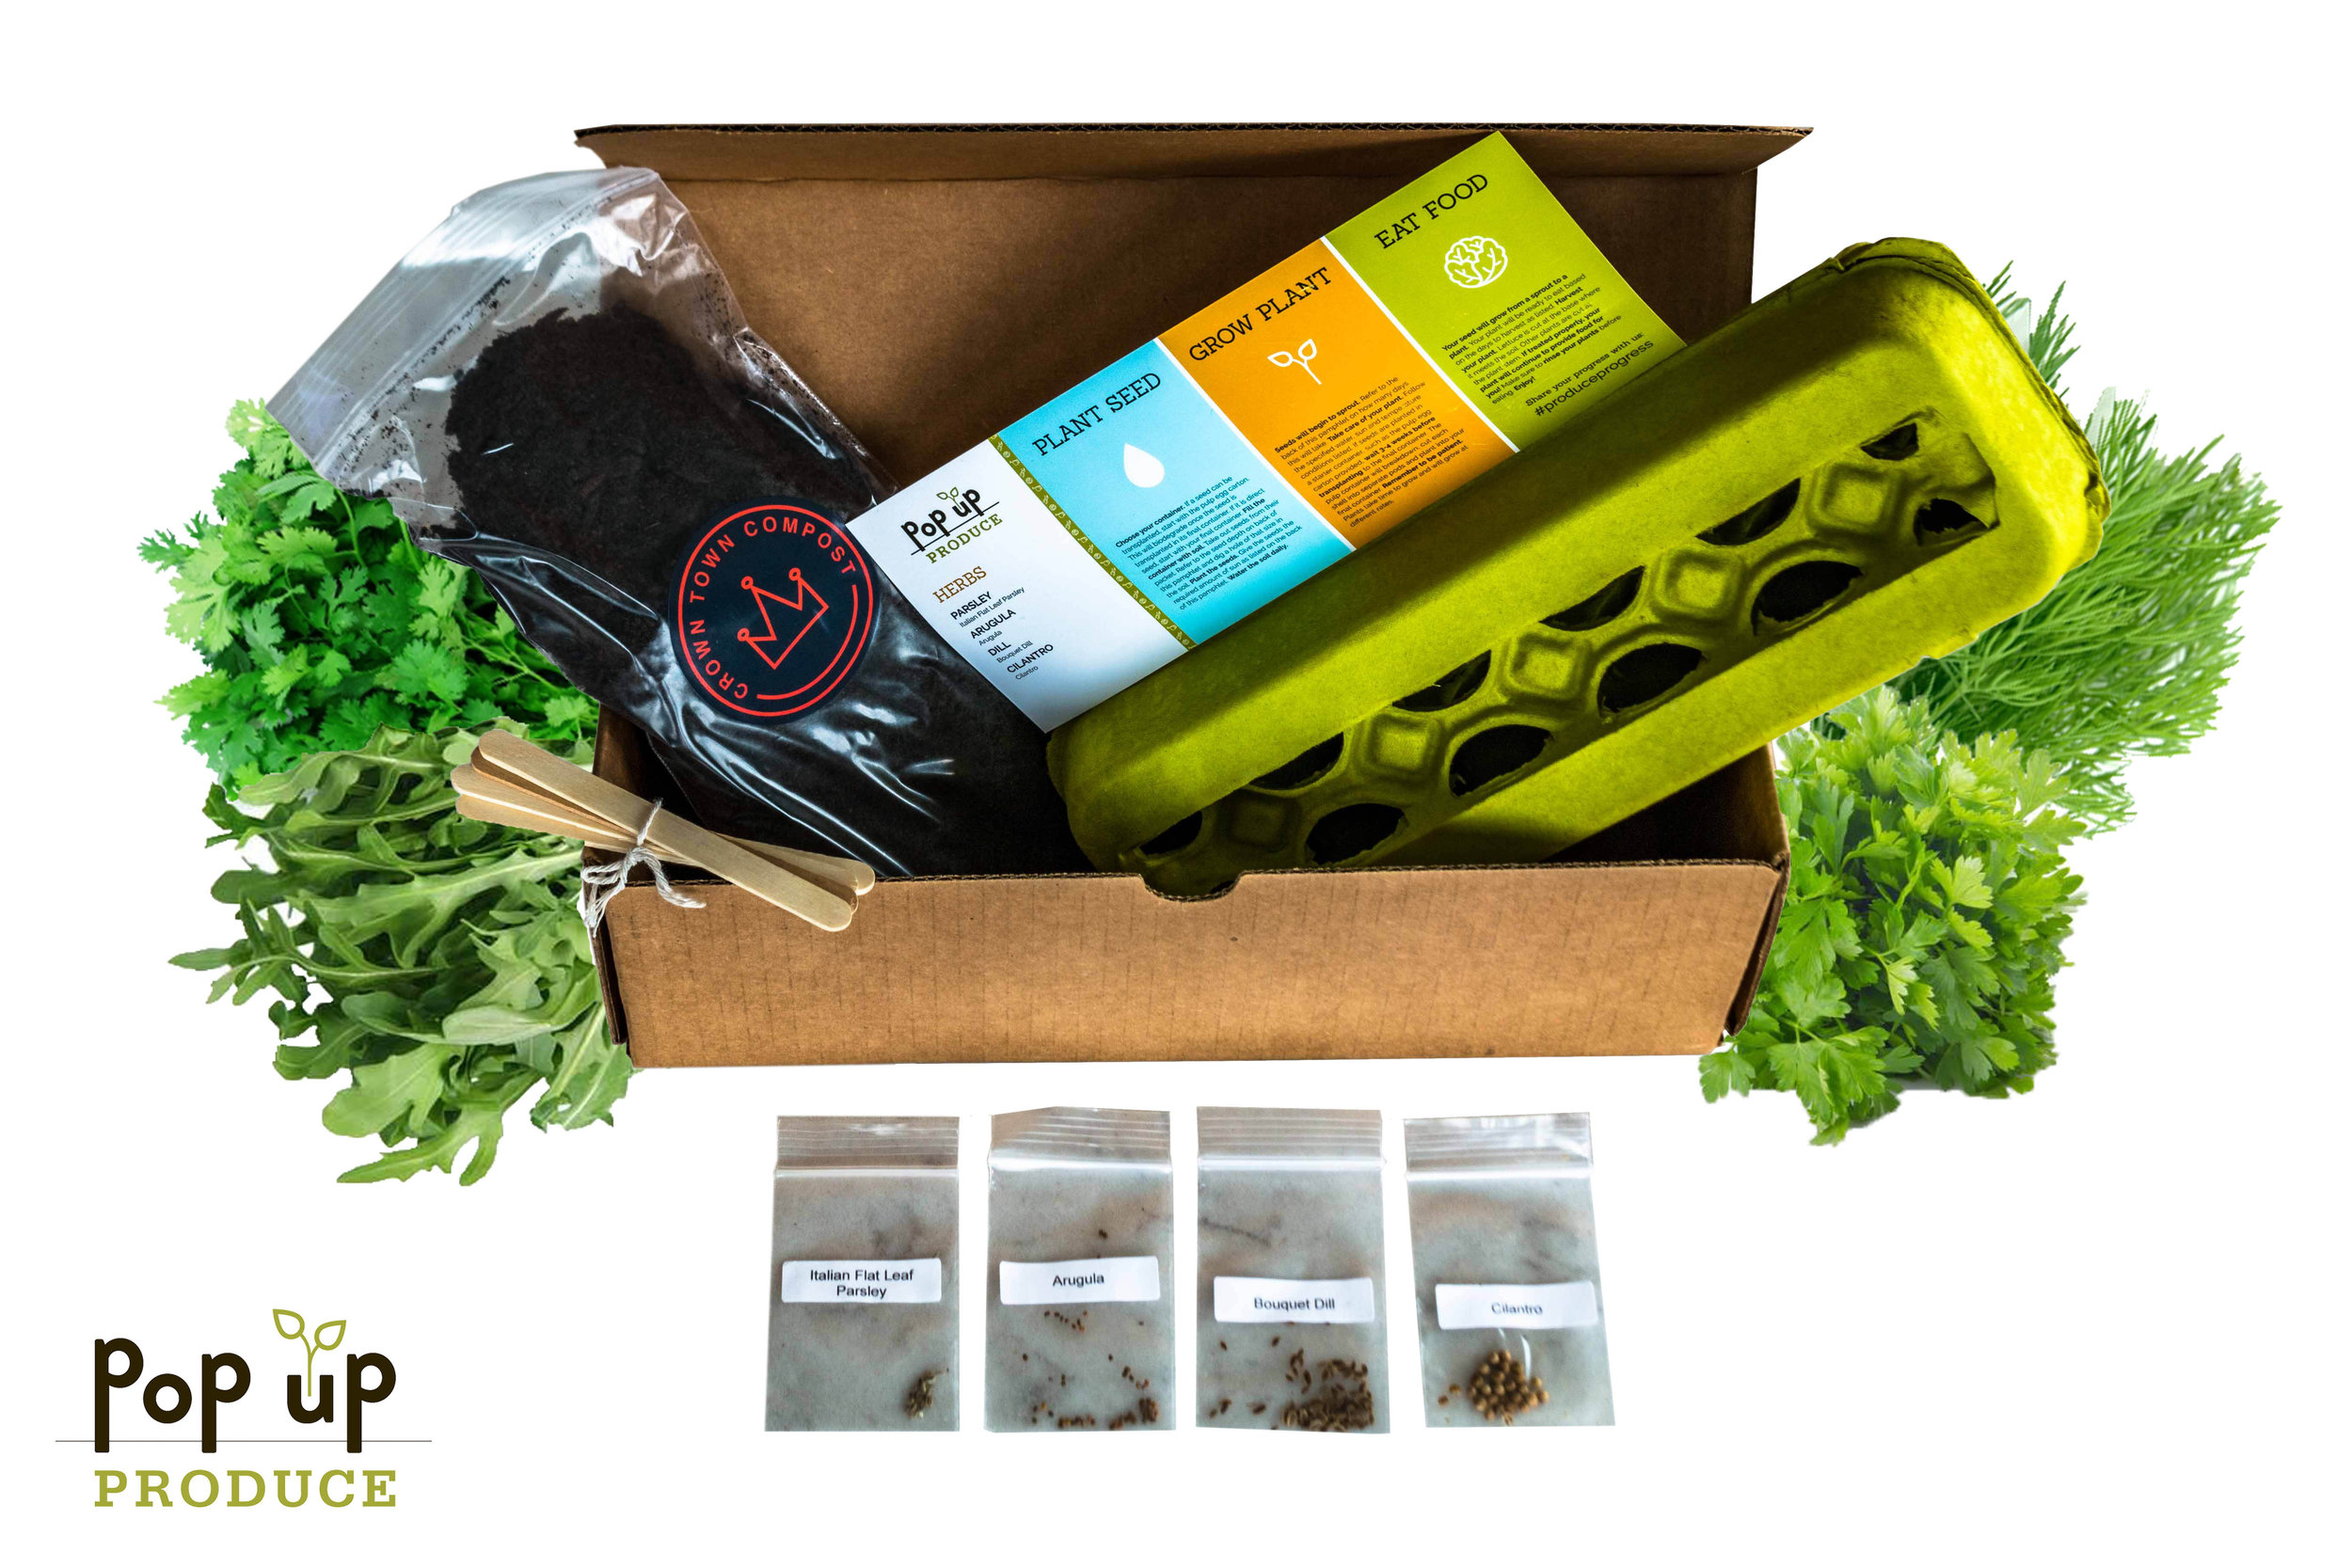 Pop Up Produce Product Shots for Web- herbs (1).jpg